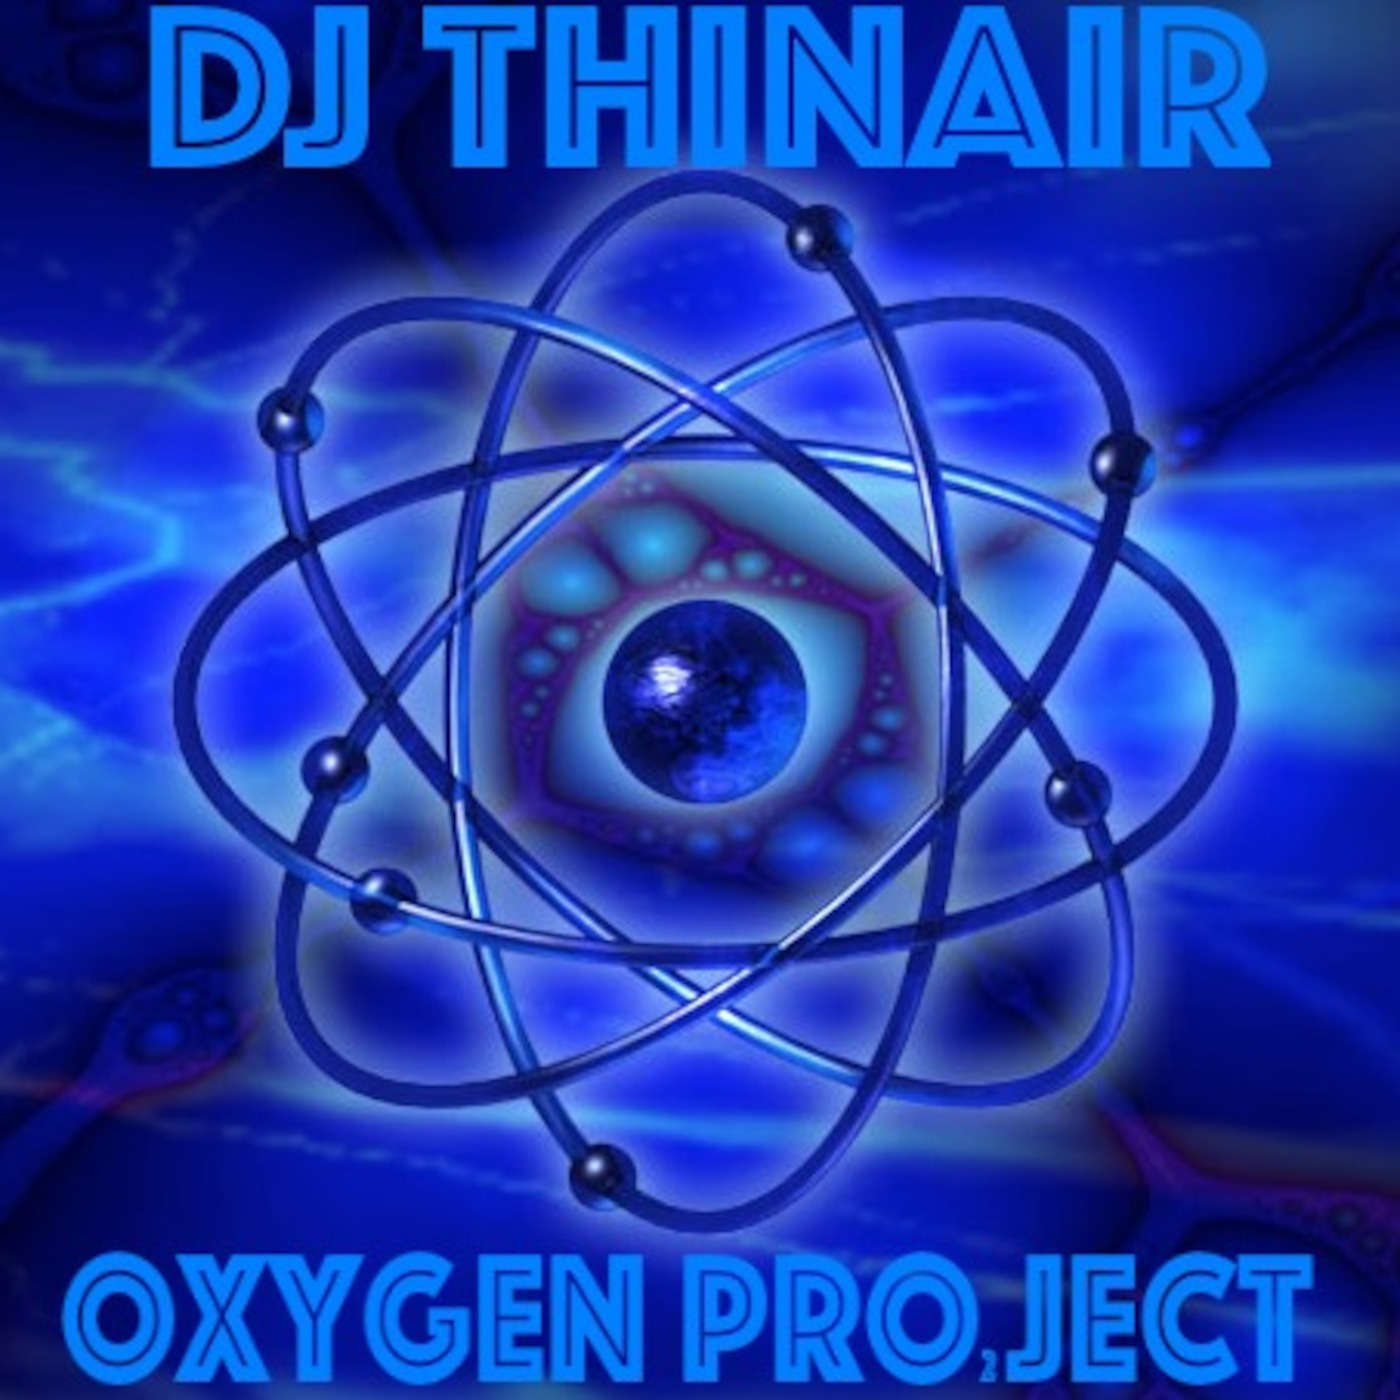 Oxygen Project Volume 02-16